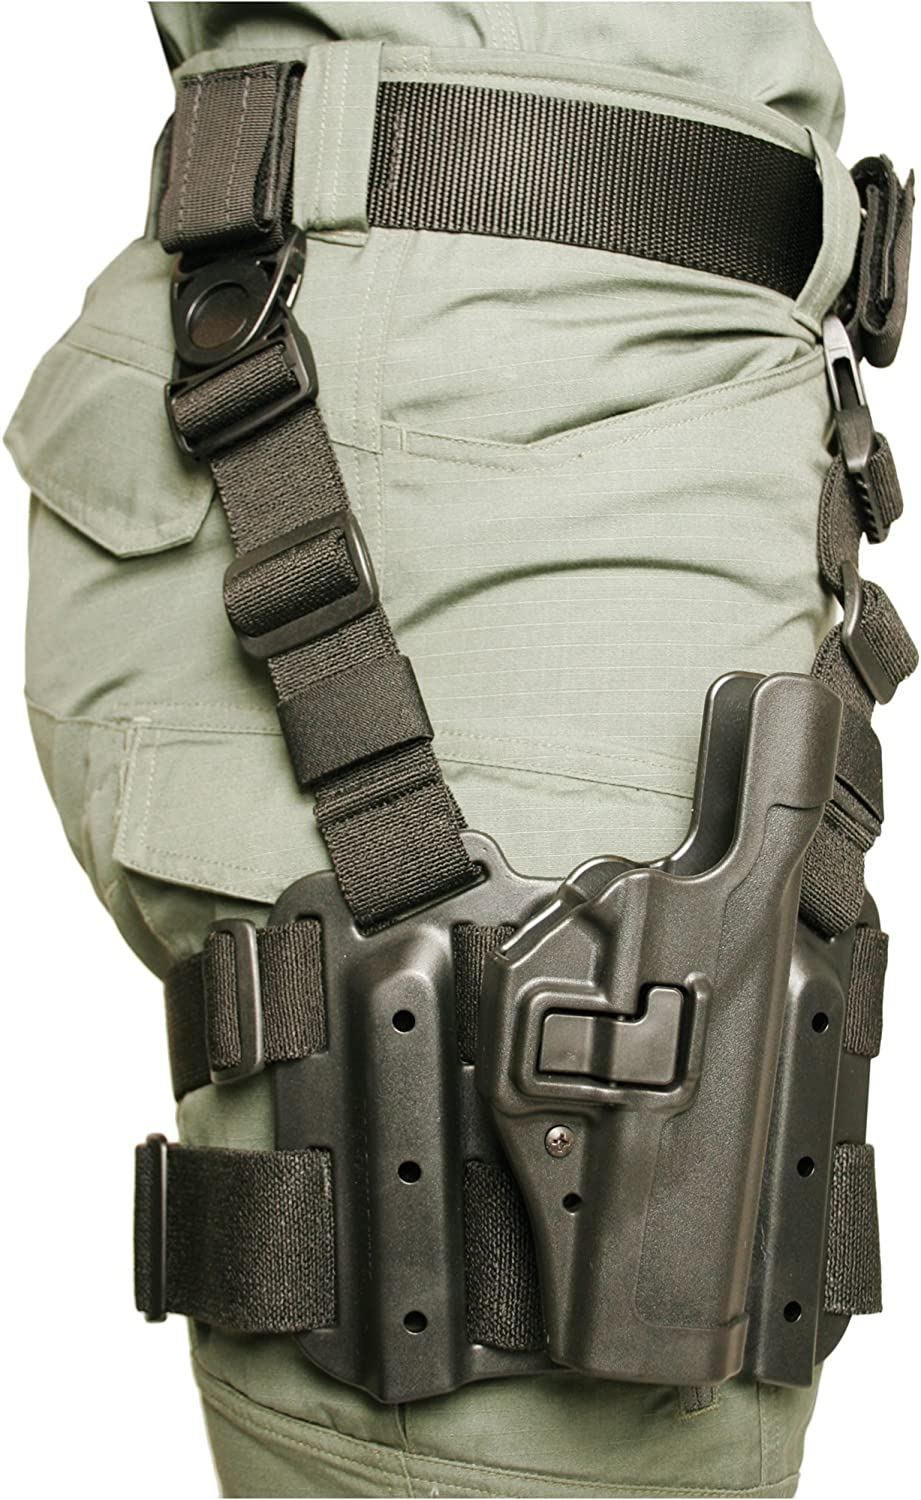 40% OFF Cheap Sale BLACKHAWK SERPA Level Industry No. 1 2 Finish Holster- Tactical Matte